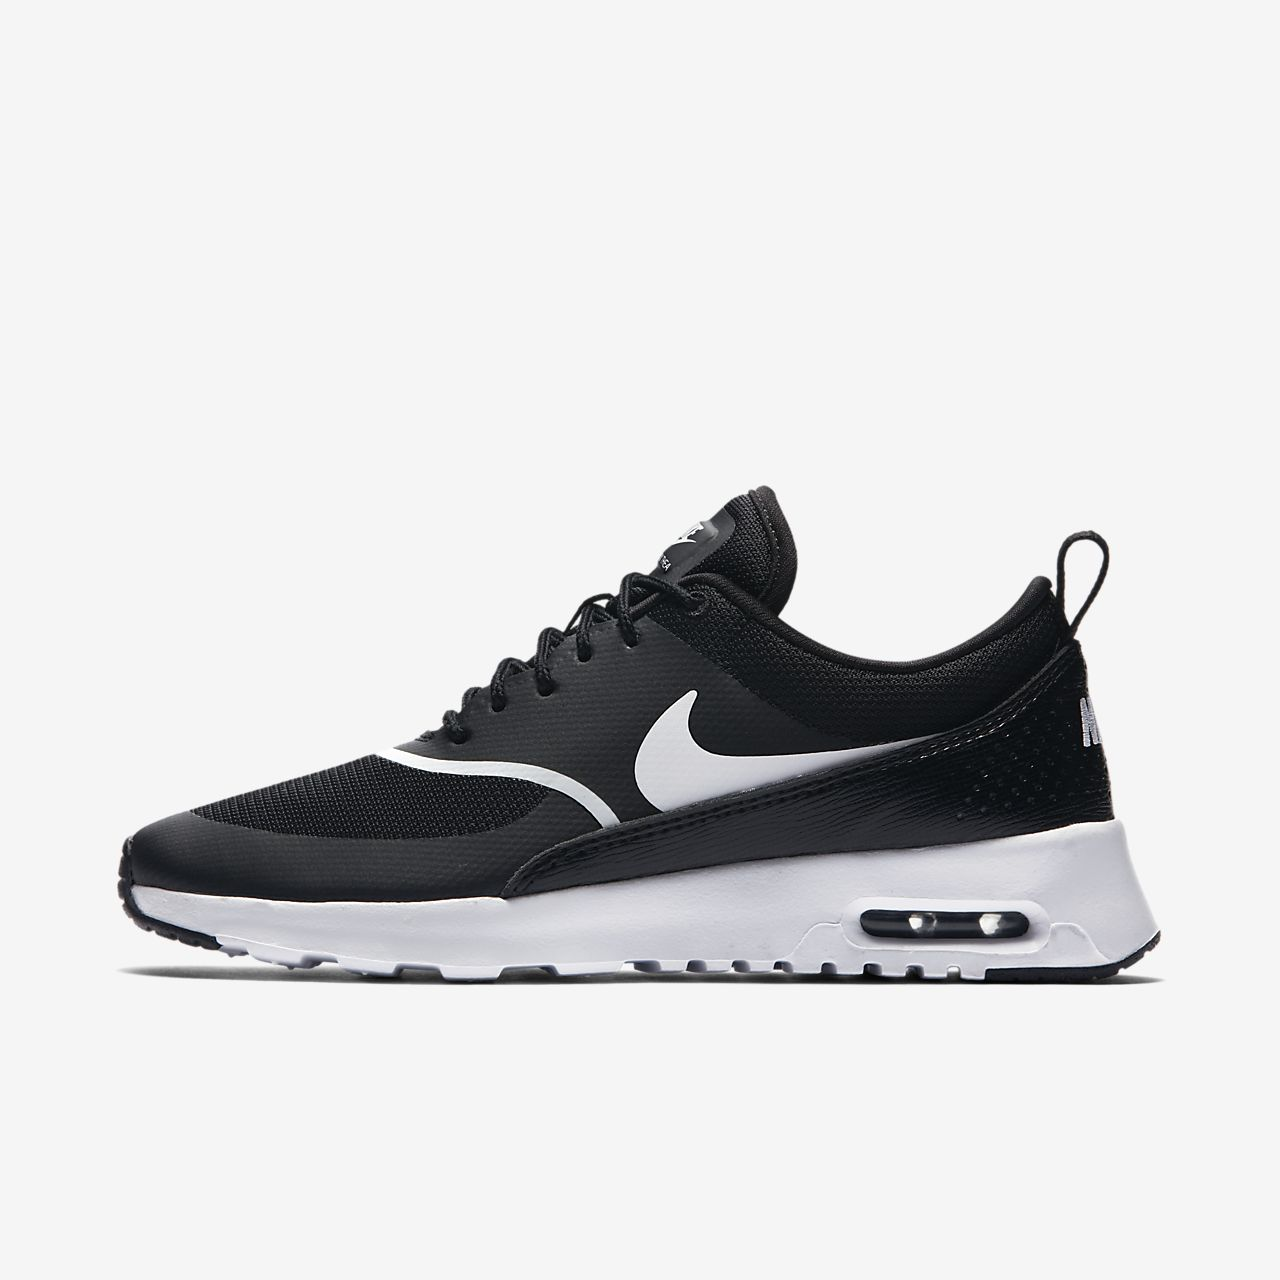 19d81f0493462a Low Resolution Nike Air Max Thea Women s Shoe Nike Air Max Thea Women s Shoe